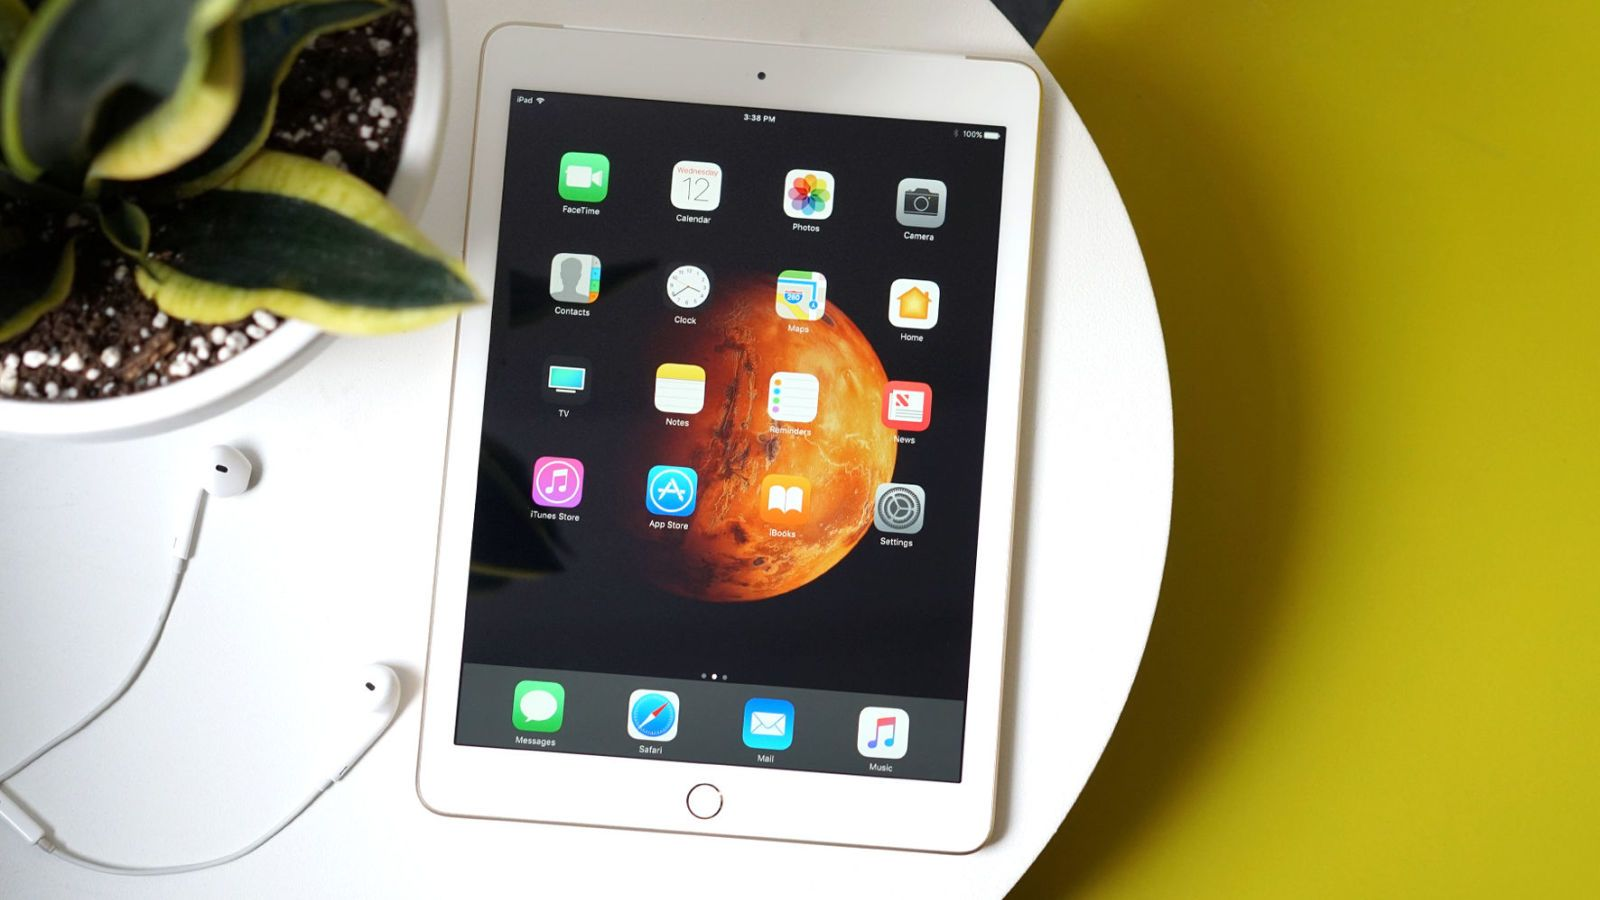 THE NEW APPLE IPAD CHANGES THE AFFORDABLE TABLET GAME